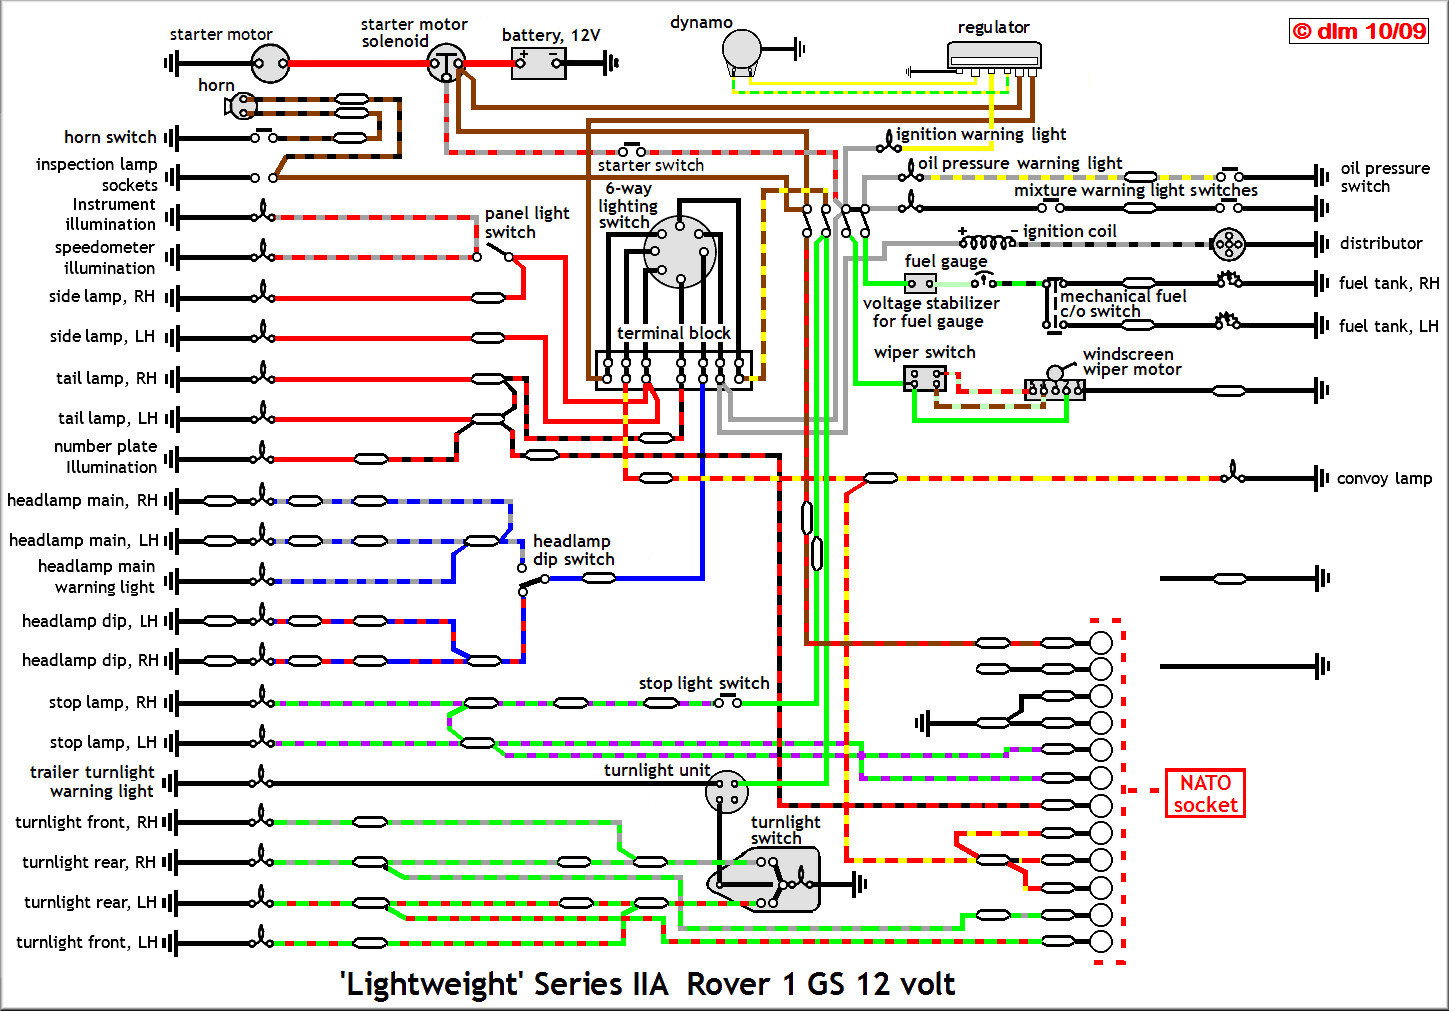 land rover wiring diagram archive hmvf historic military land rover wiring diagram archive hmvf historic military vehicles forum